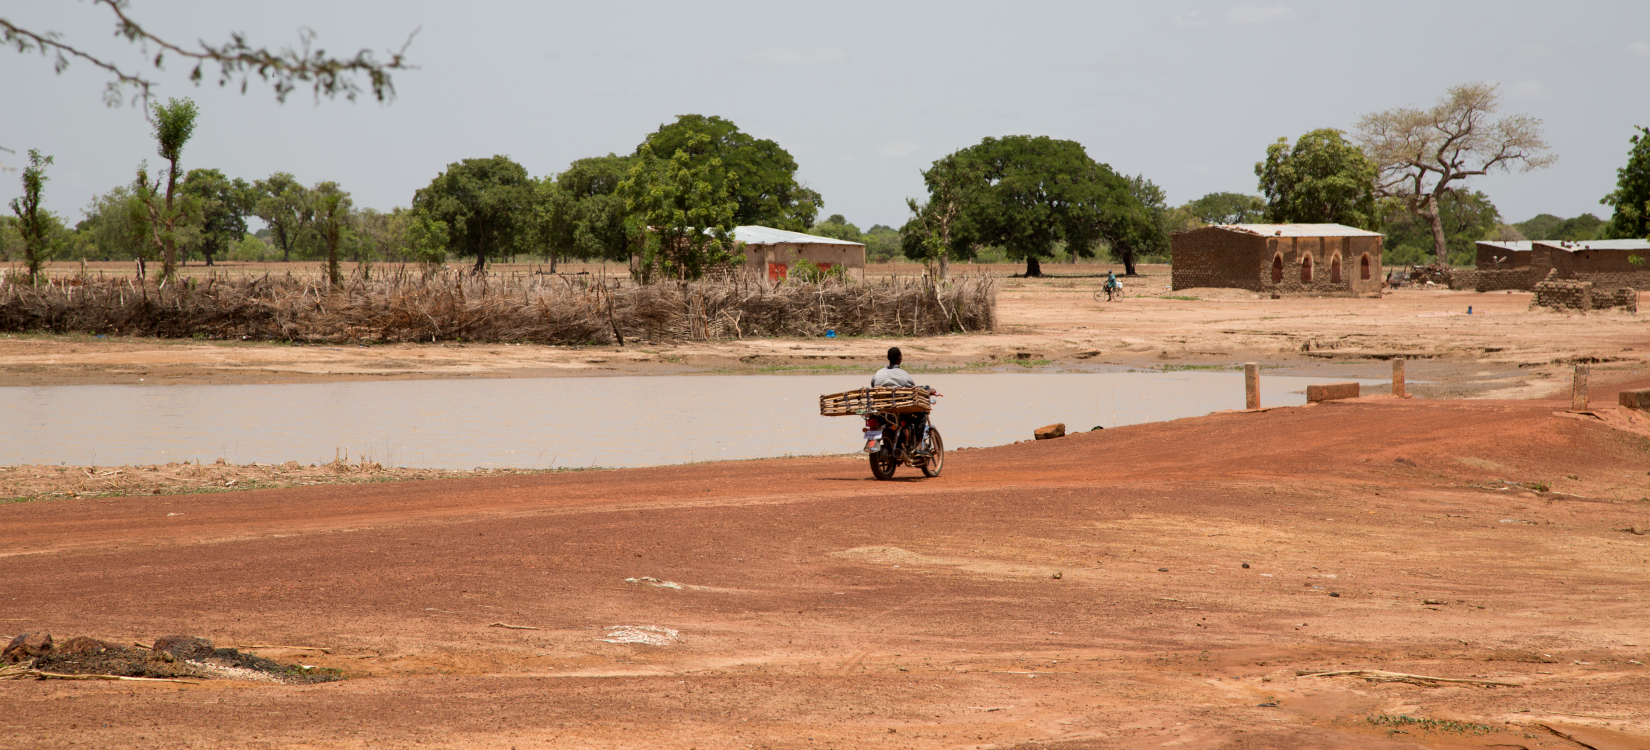 New project in Southern Mali aims at improving access to health services